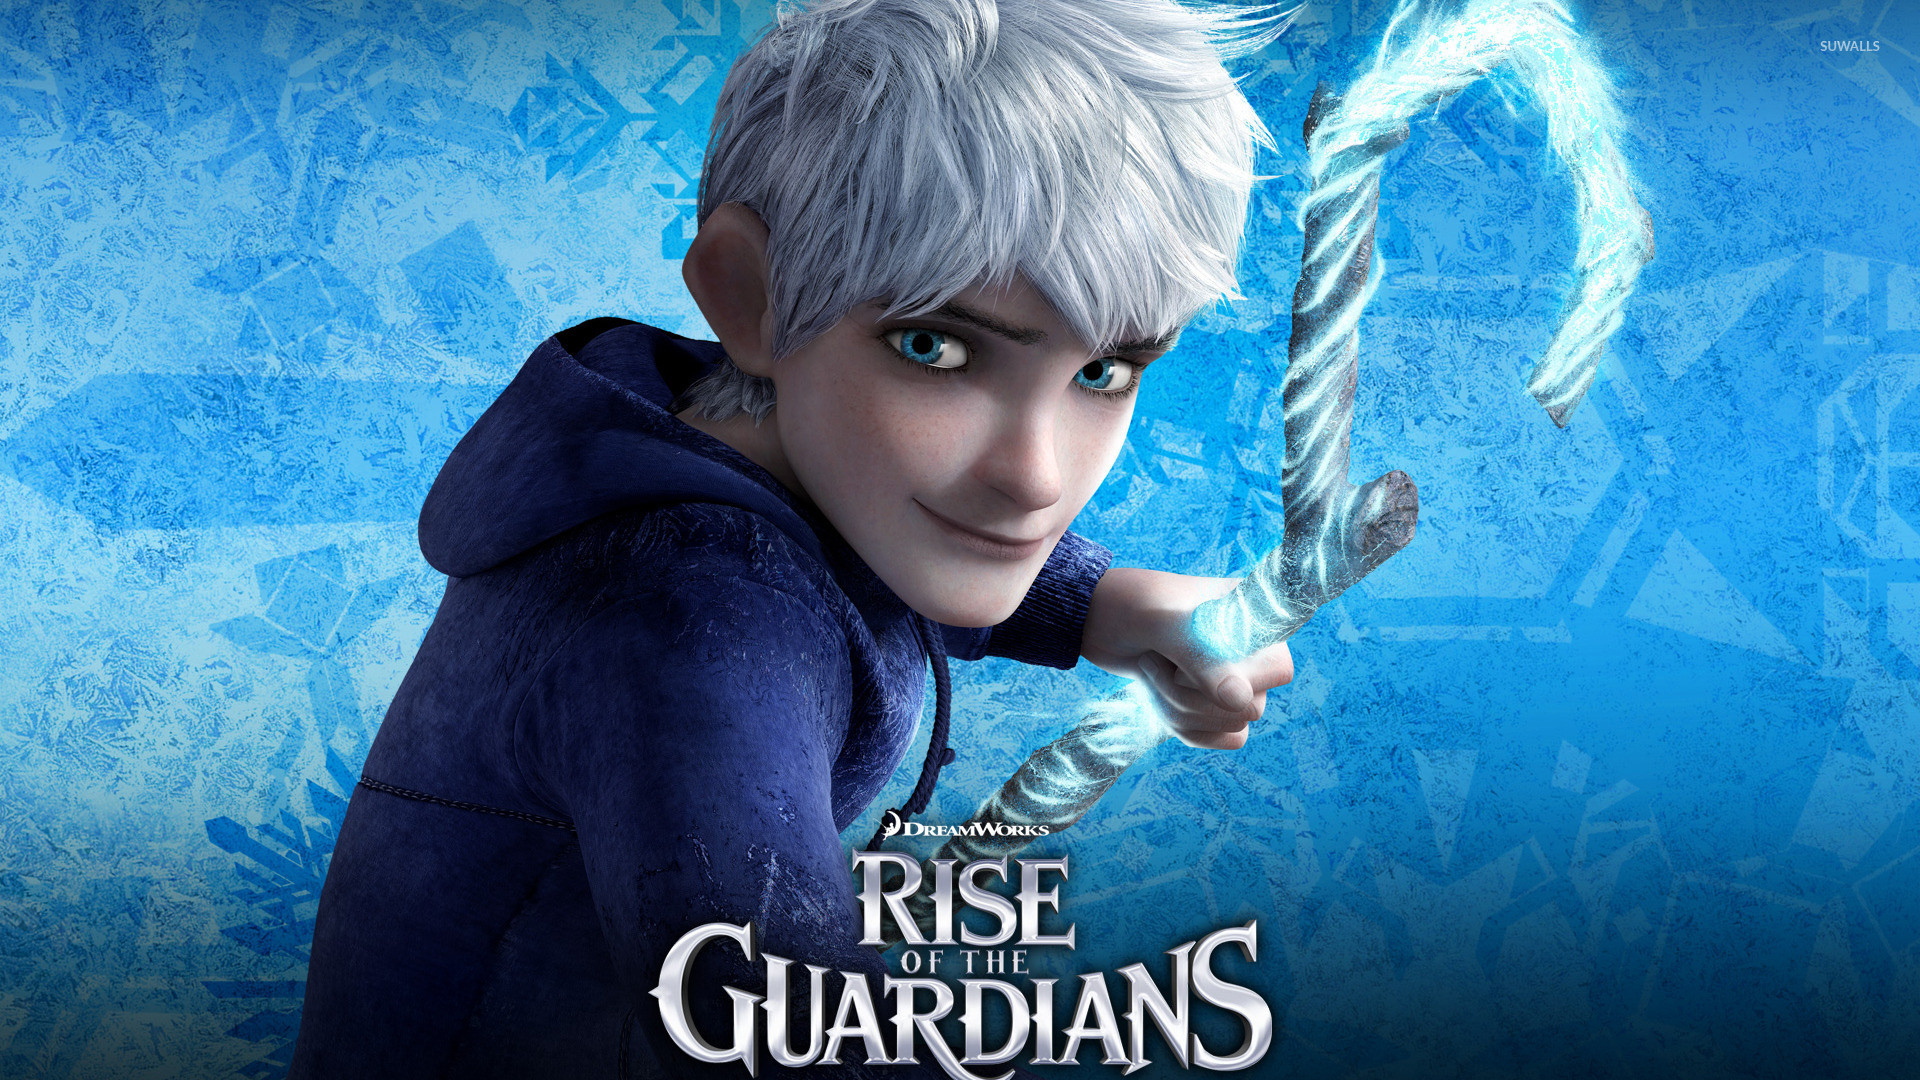 Jack Frost – Rise of the Guardians wallpaper – Cartoon wallpapers .